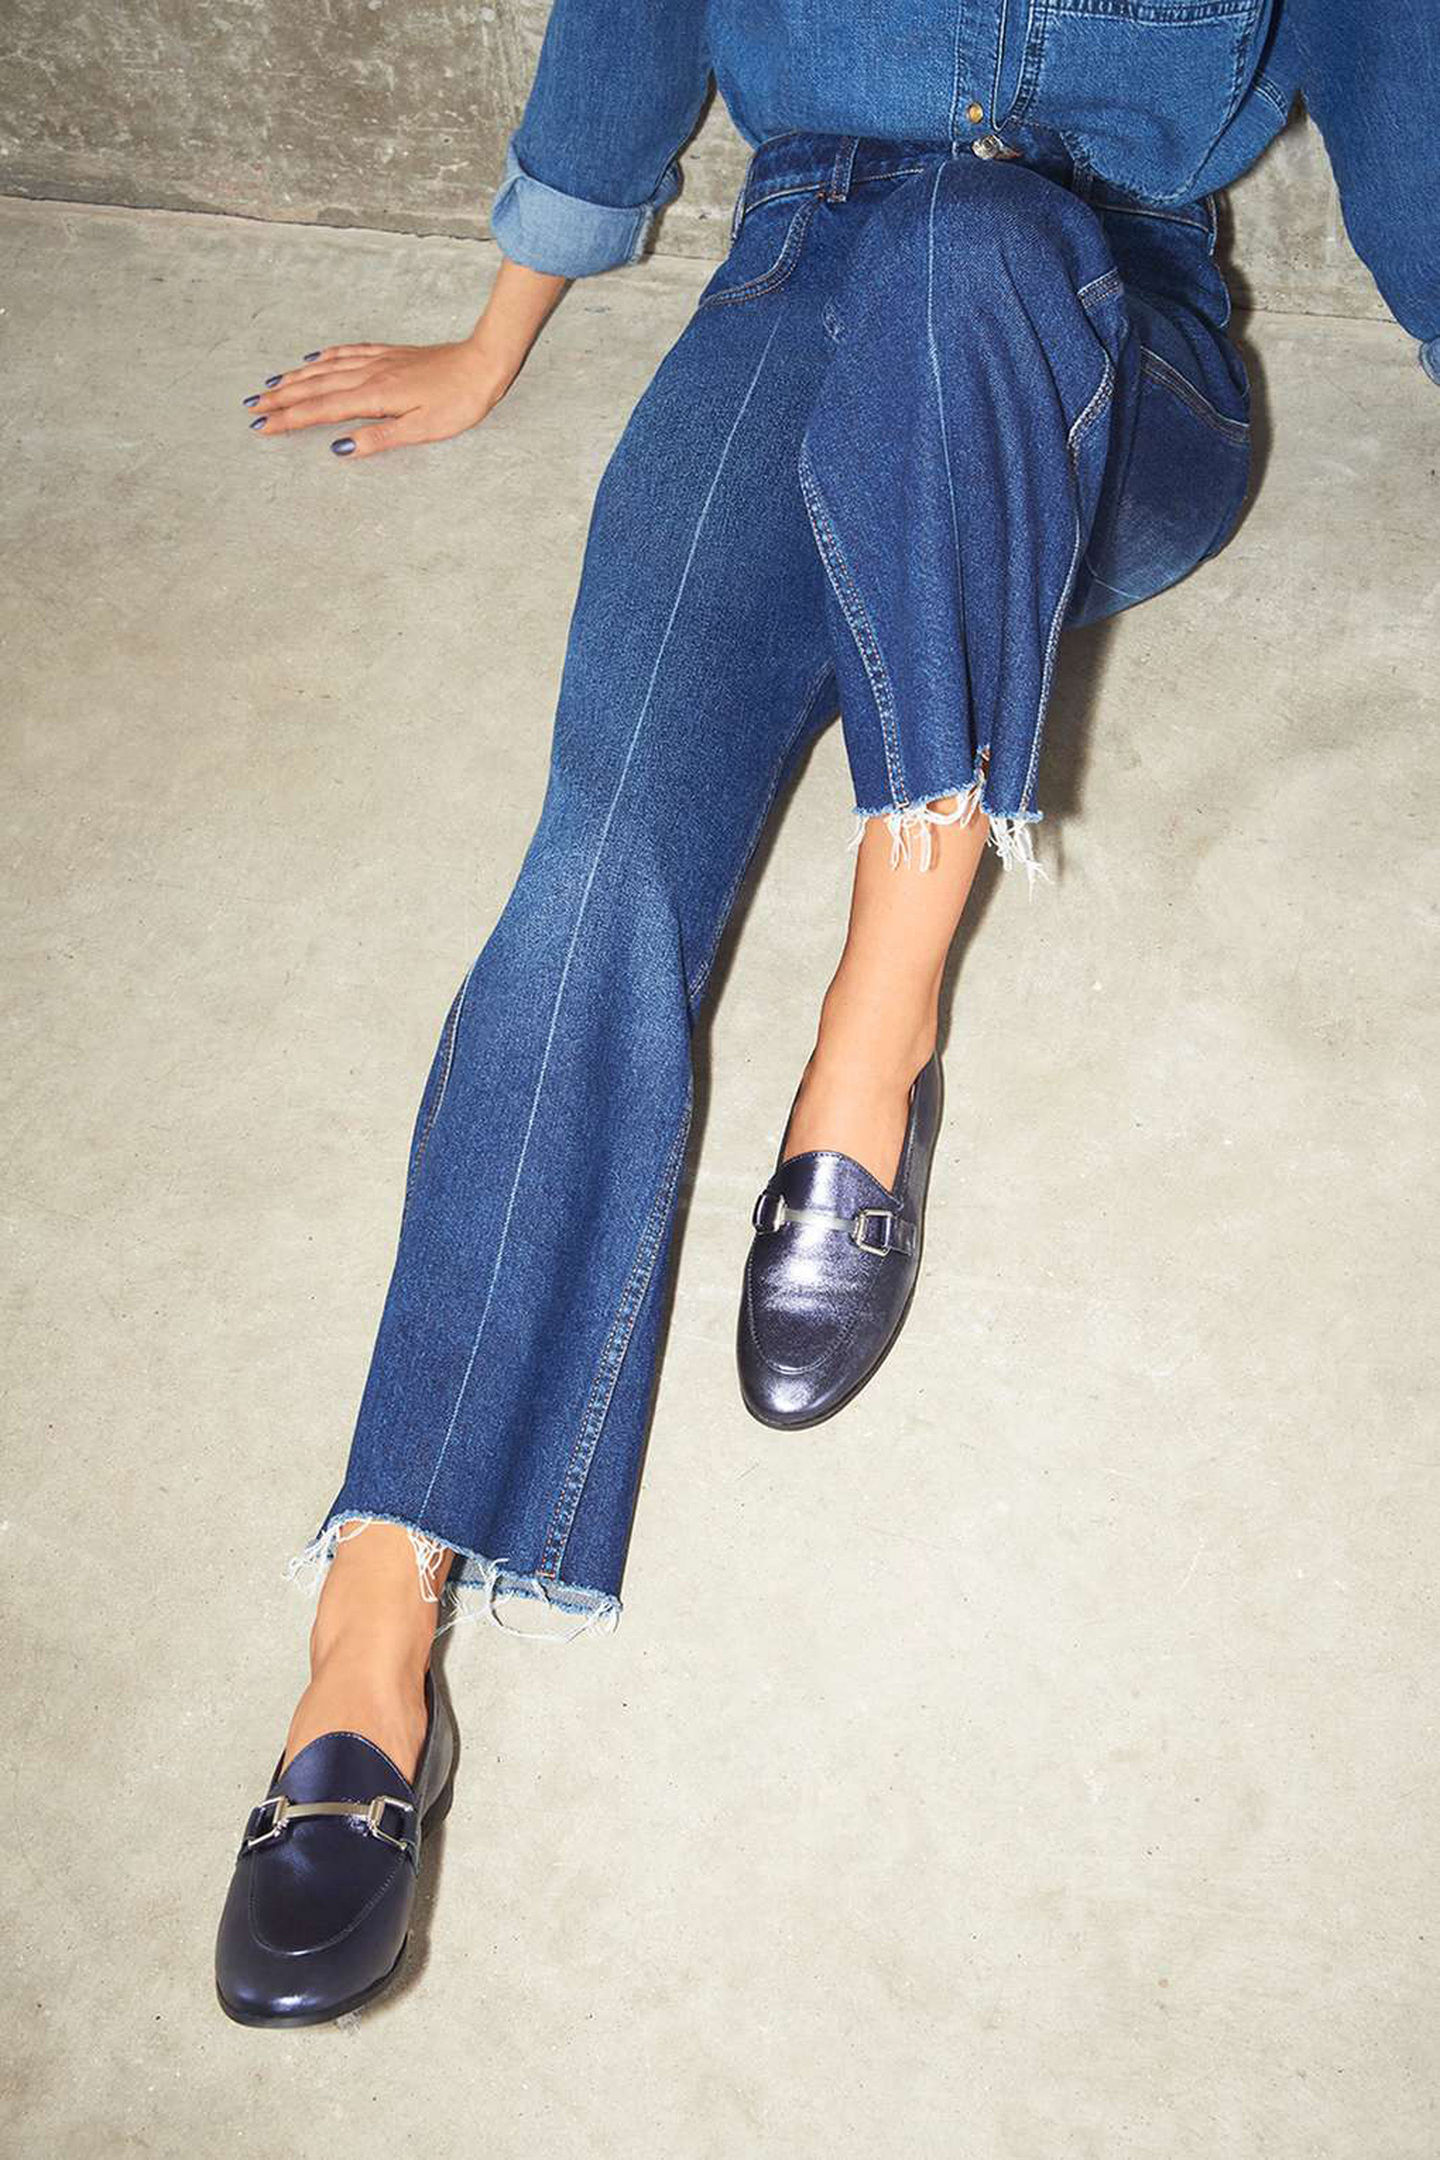 Topshop Kendall Leather Loafers, available from topshop.com.